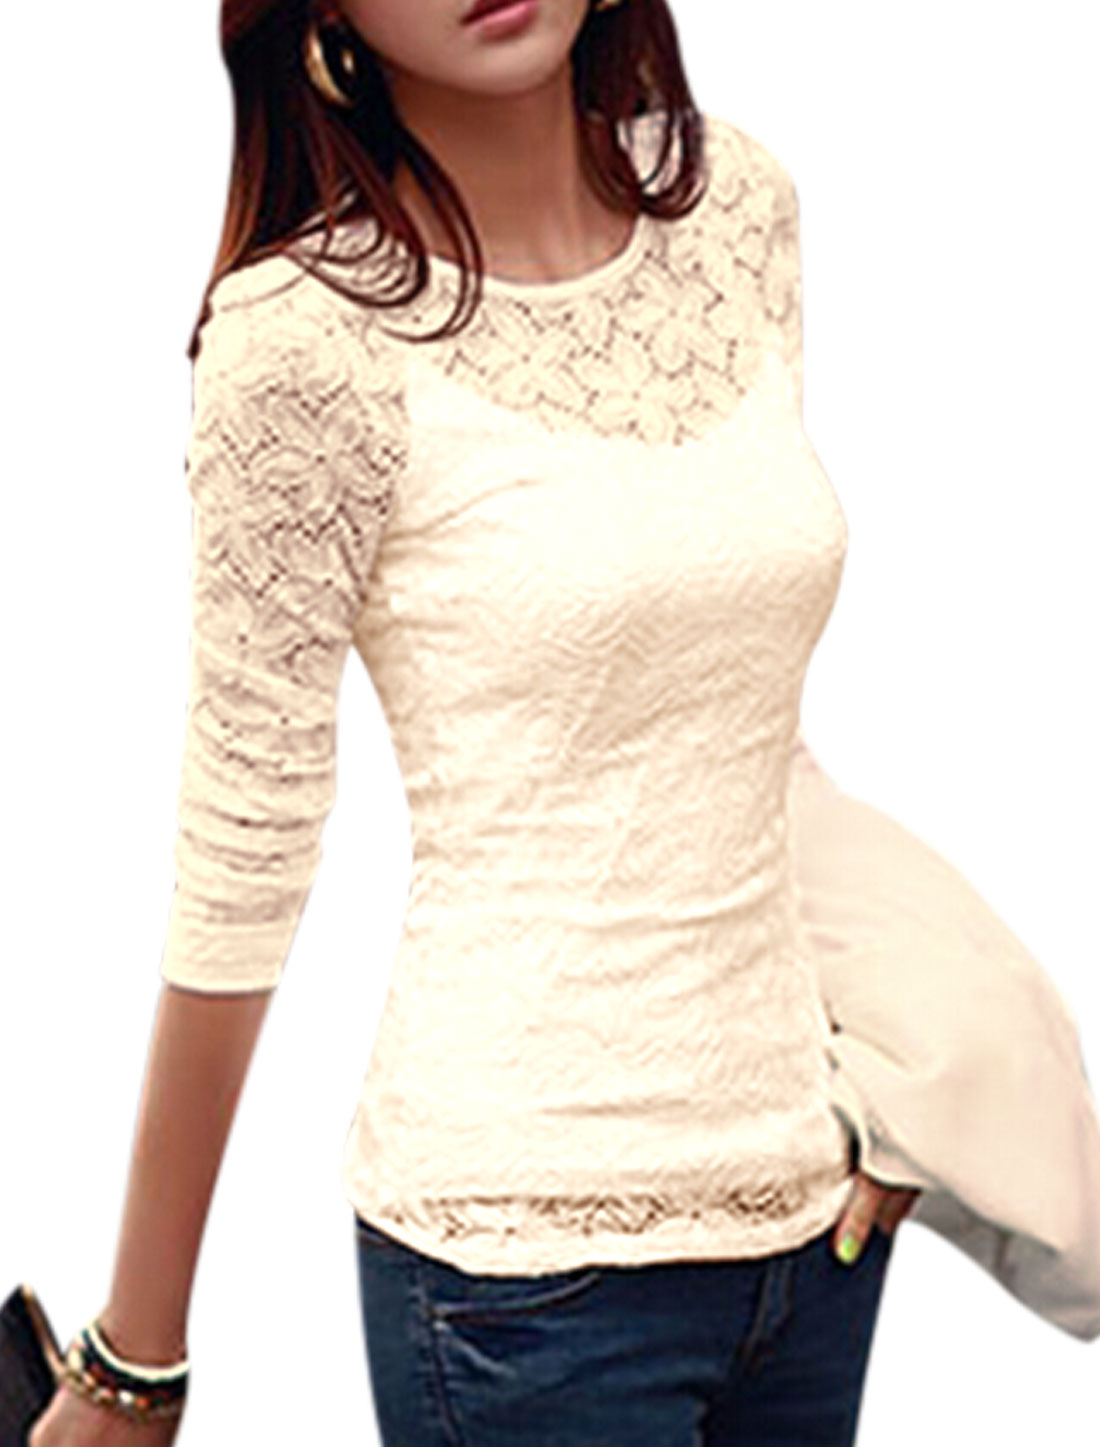 Women Slipover Flower Design Fitting Top w Leisure Cami Beige S